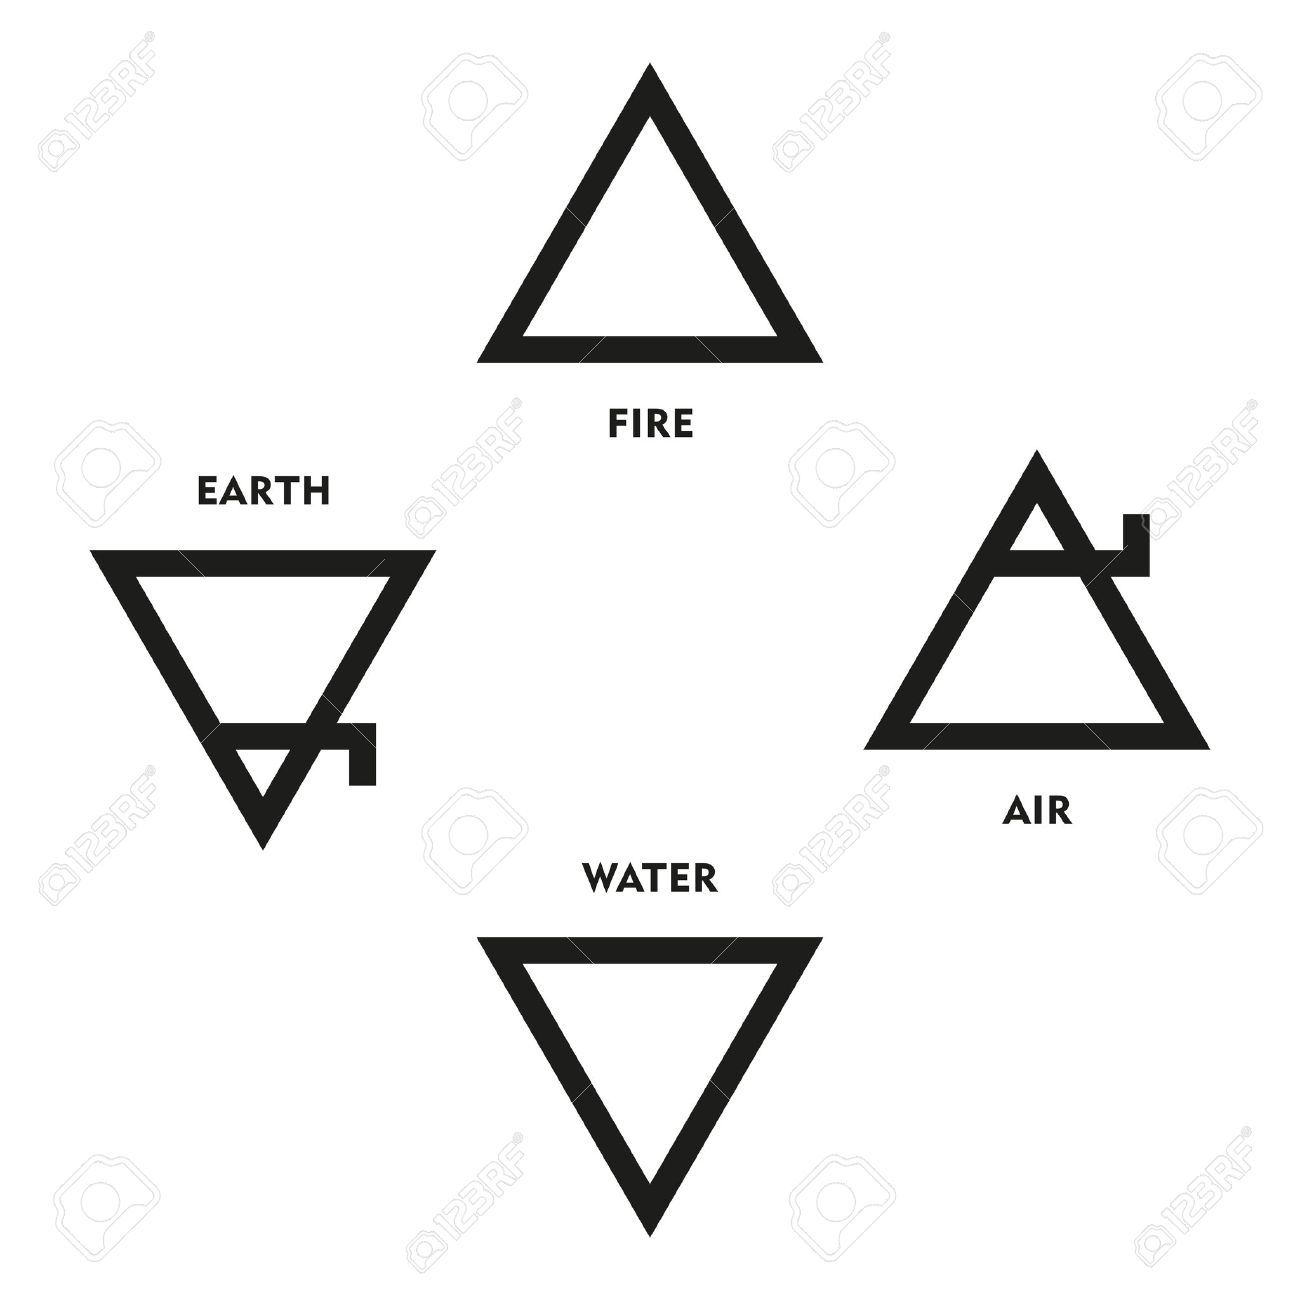 Classical four elements symbols of medieval alchemy triangles classical four elements symbols of medieval alchemy triangles representing fire earth water and air buycottarizona